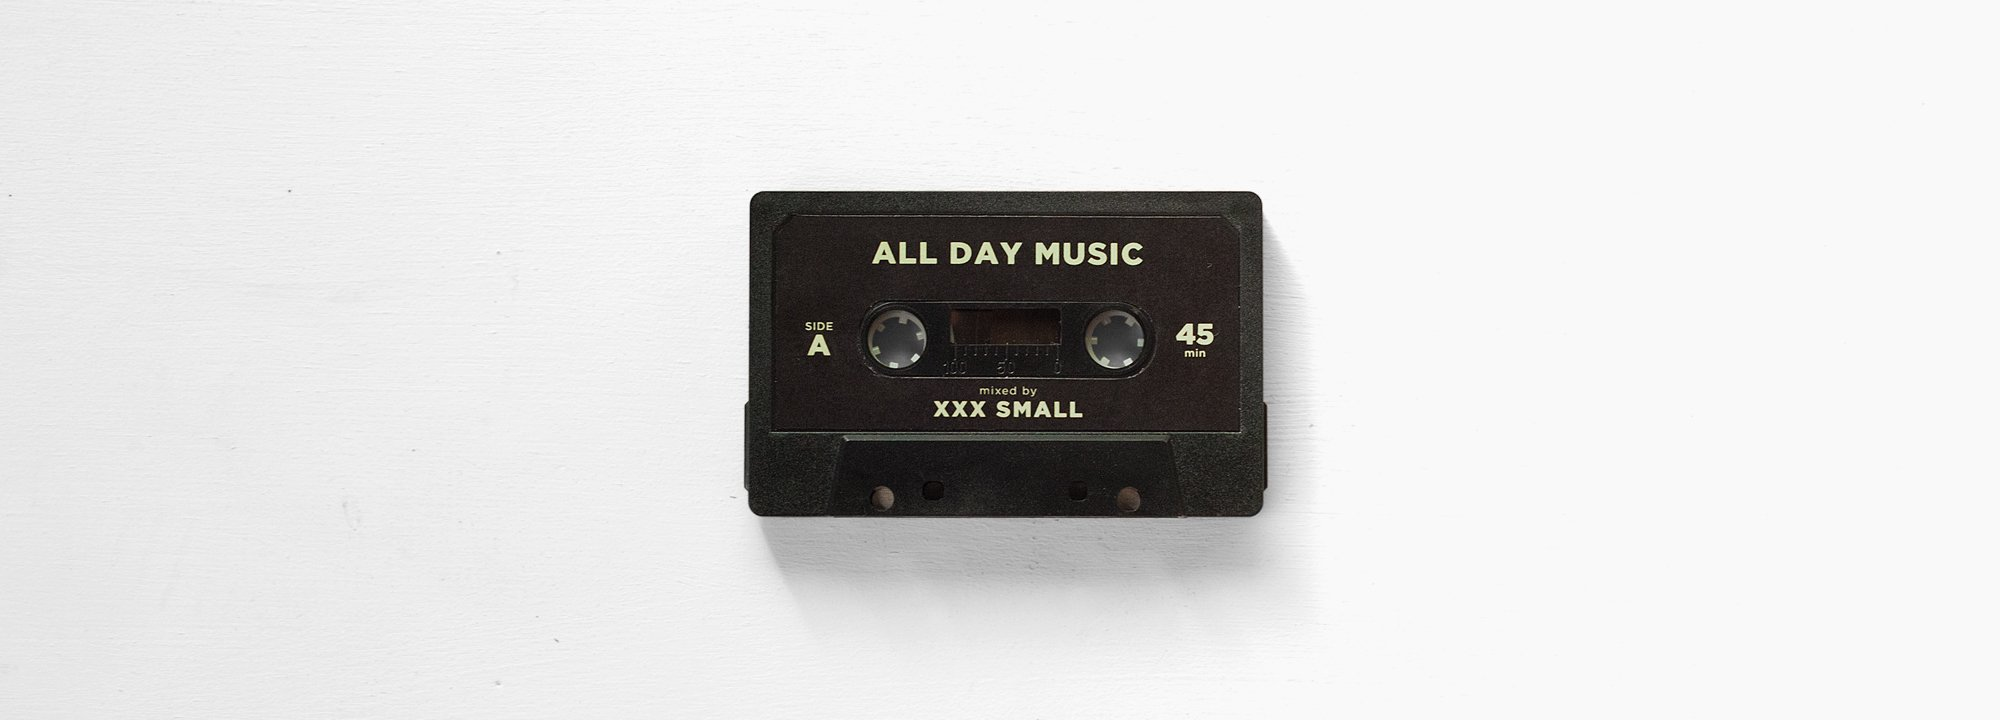 "【BROS限定】DL Mix ""ALL DAY MUSIC #1"" Mixed by XXXSMALL"